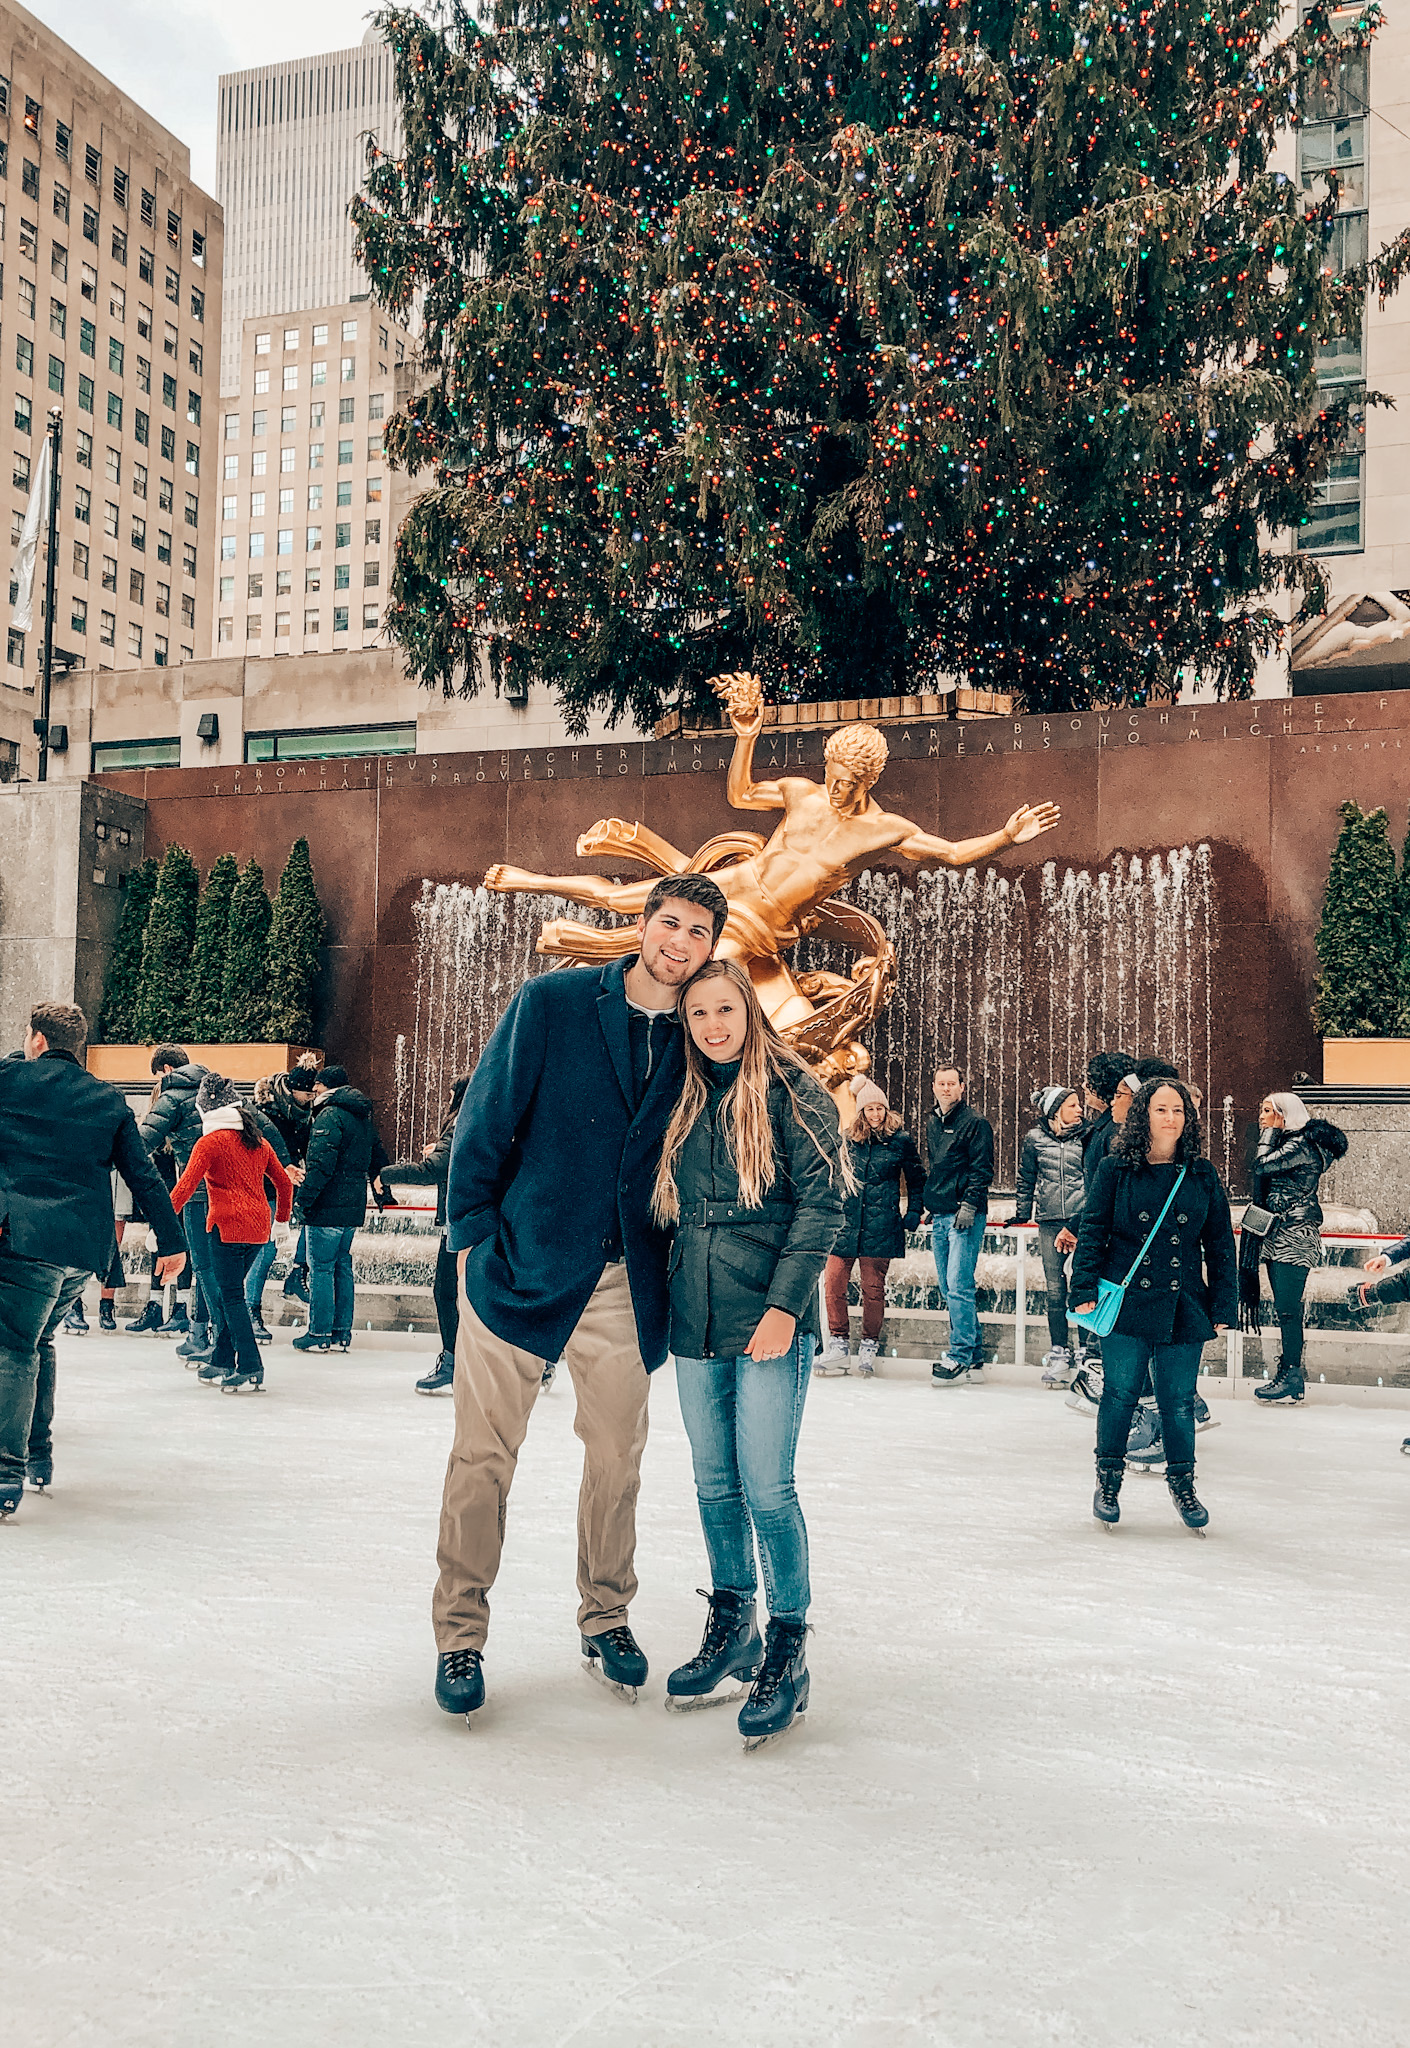 Ice skating at Rockefeller Center with my boyfriend in December!